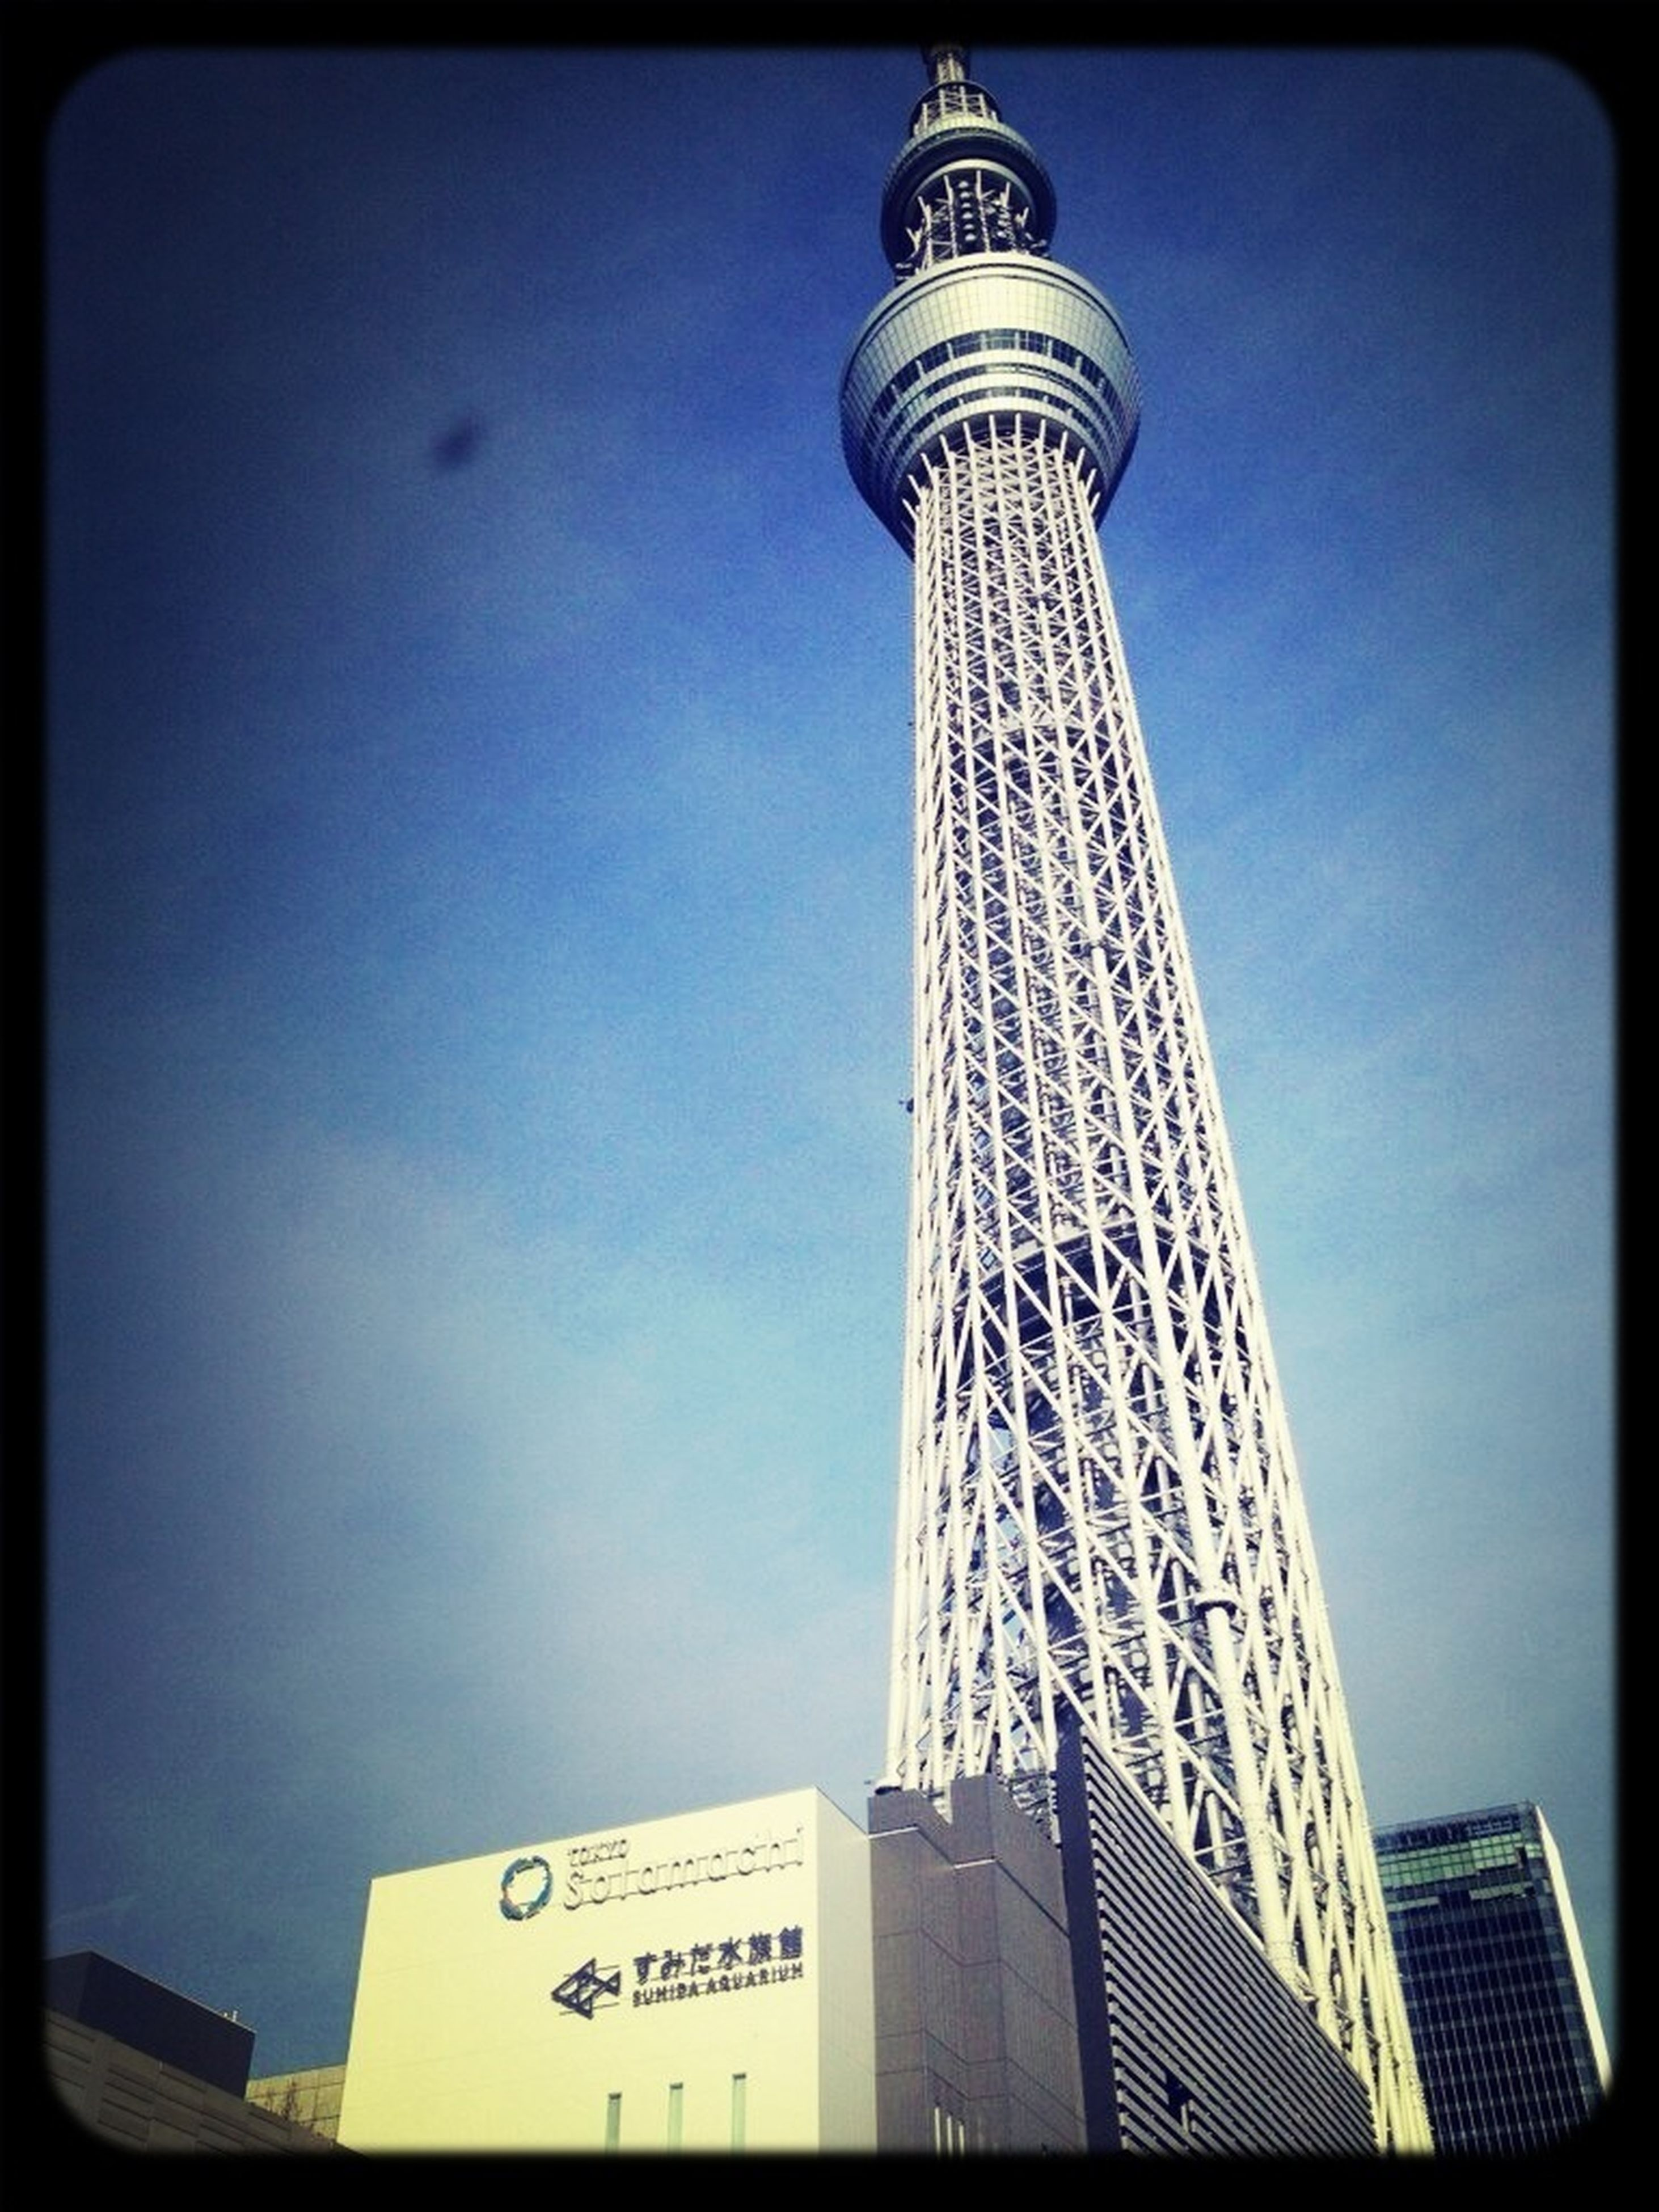 tower, transfer print, built structure, architecture, low angle view, tall - high, communication, international landmark, building exterior, auto post production filter, communications tower, travel destinations, famous place, clear sky, capital cities, sky, tourism, blue, travel, tall